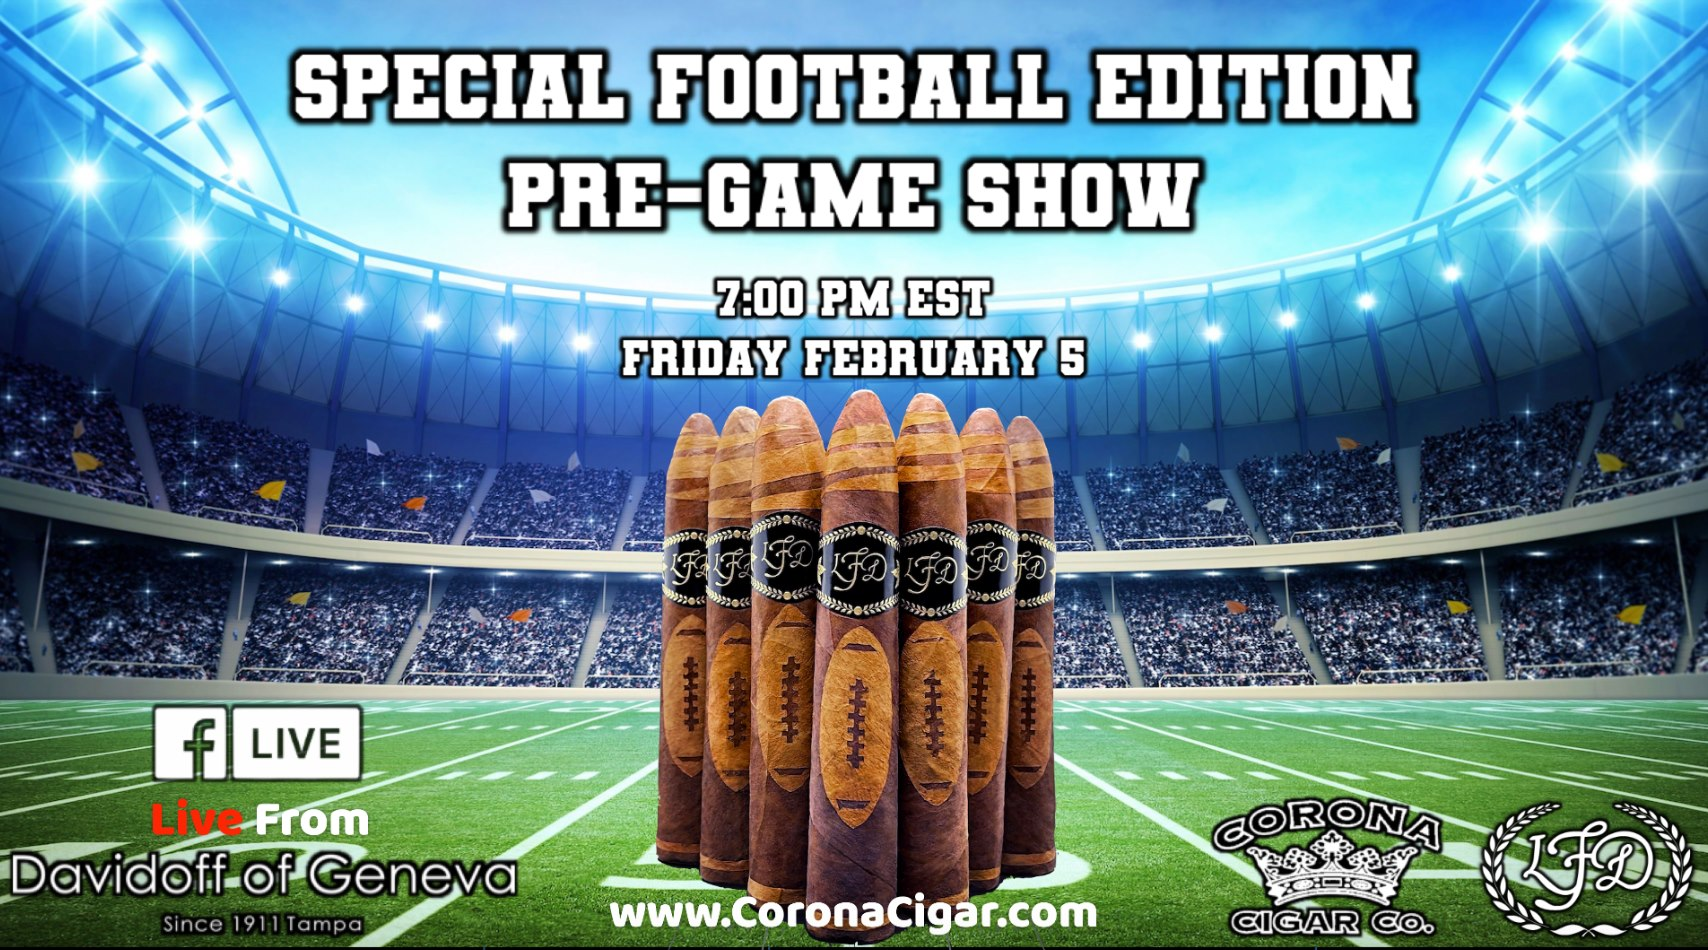 The Blog: Will Cooper and Bear Duplisea Guest on La Flor Dominicana's Big Game Pre-Game Show